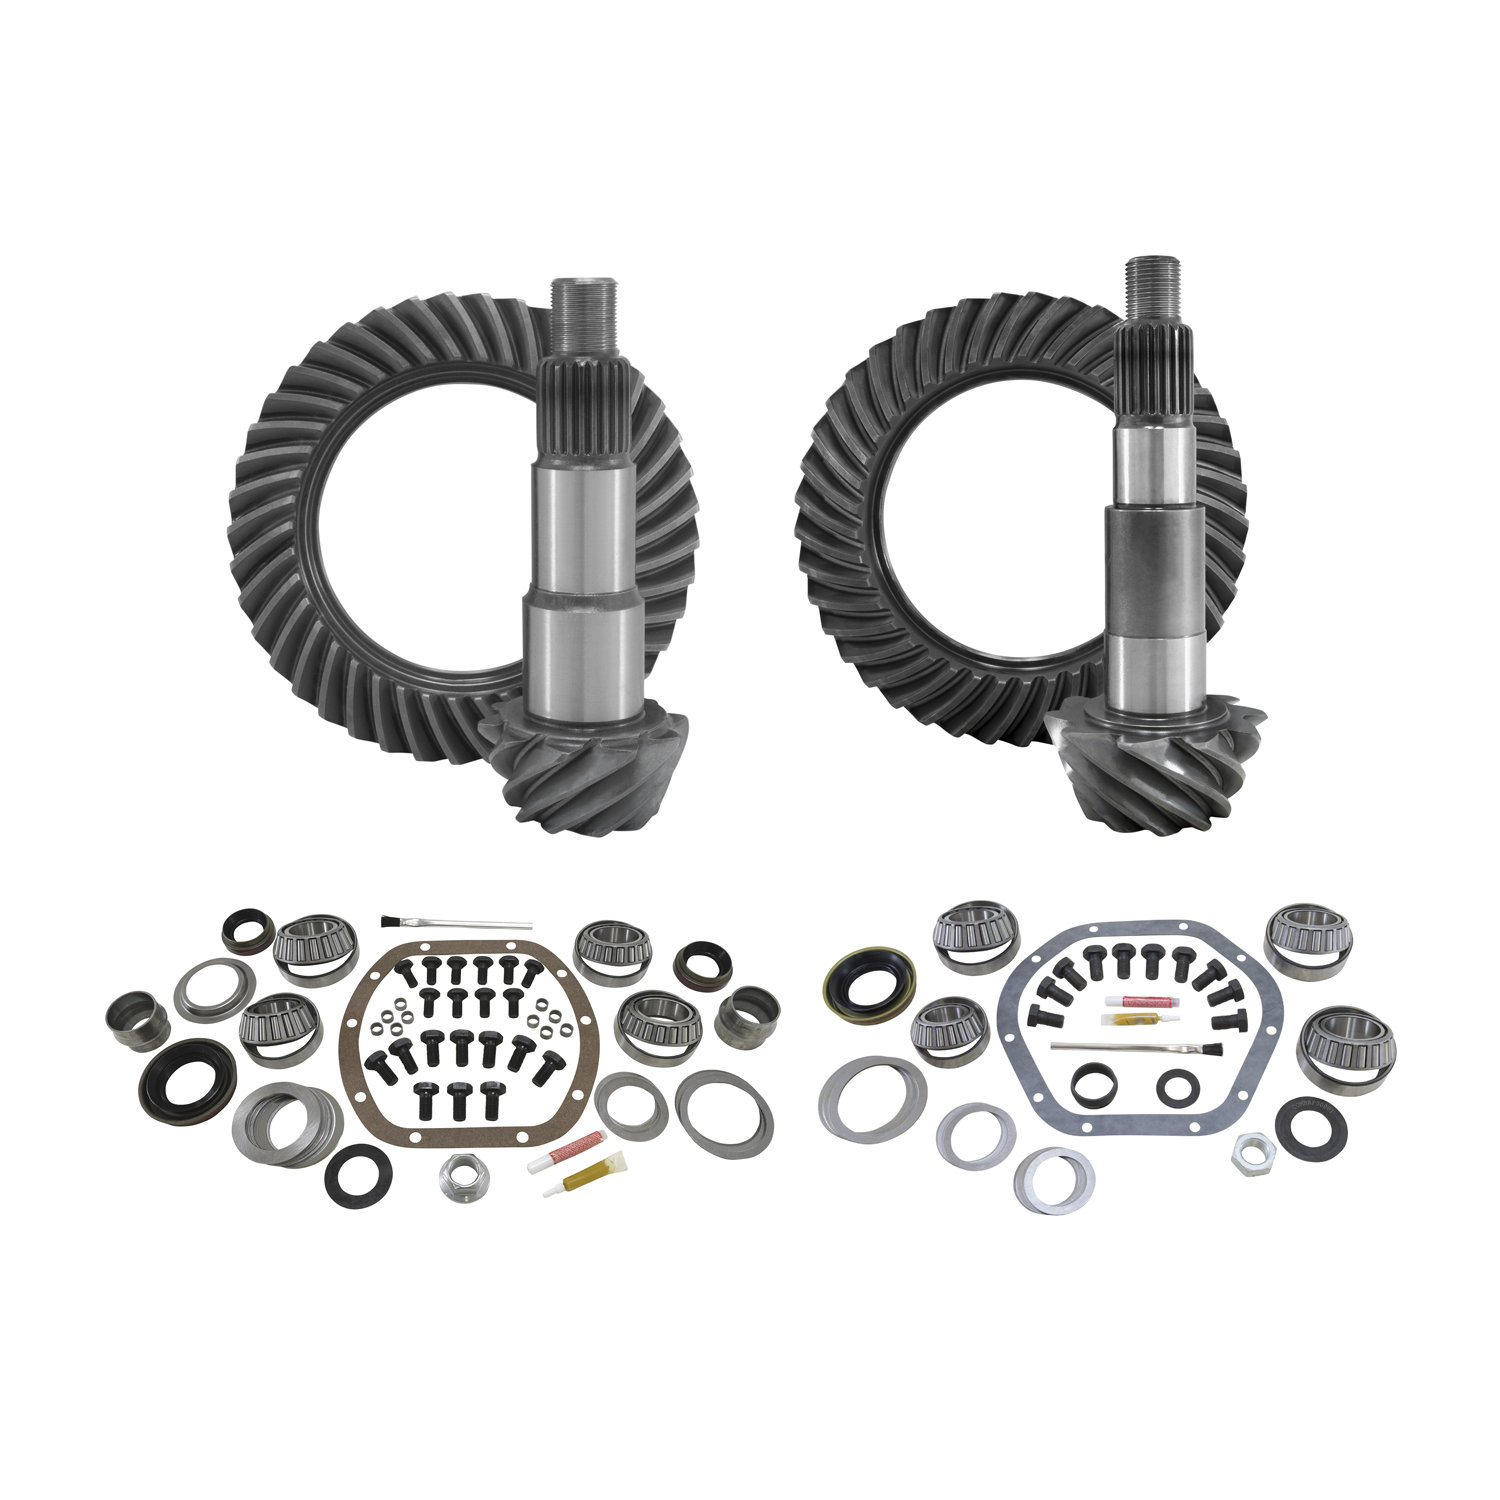 Yukon Gear Amp Axle Front Amp Rear Ring And Pinion With Master